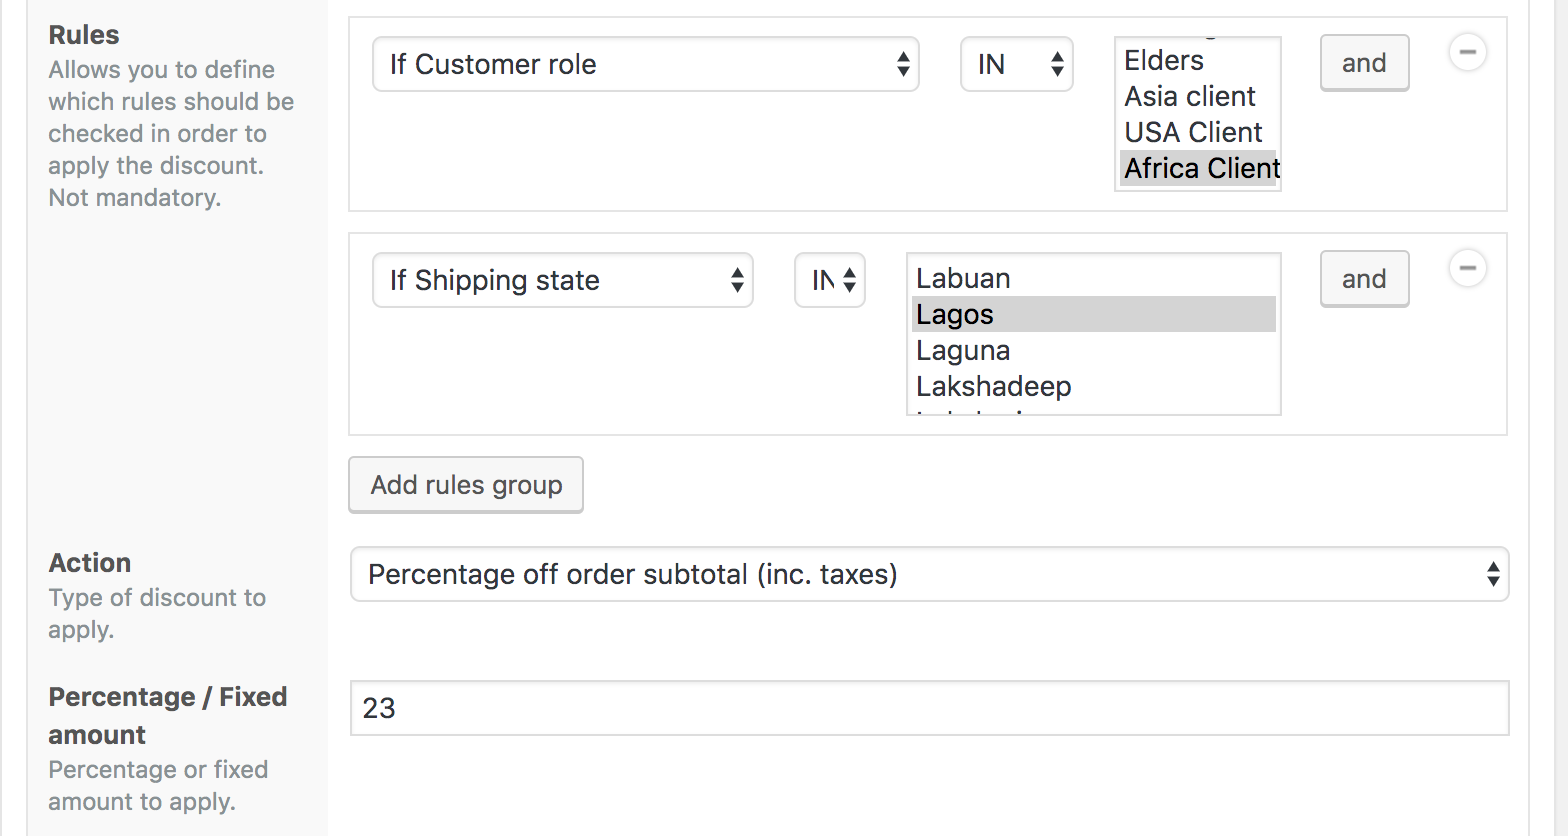 African client discount for Lagos shipping state